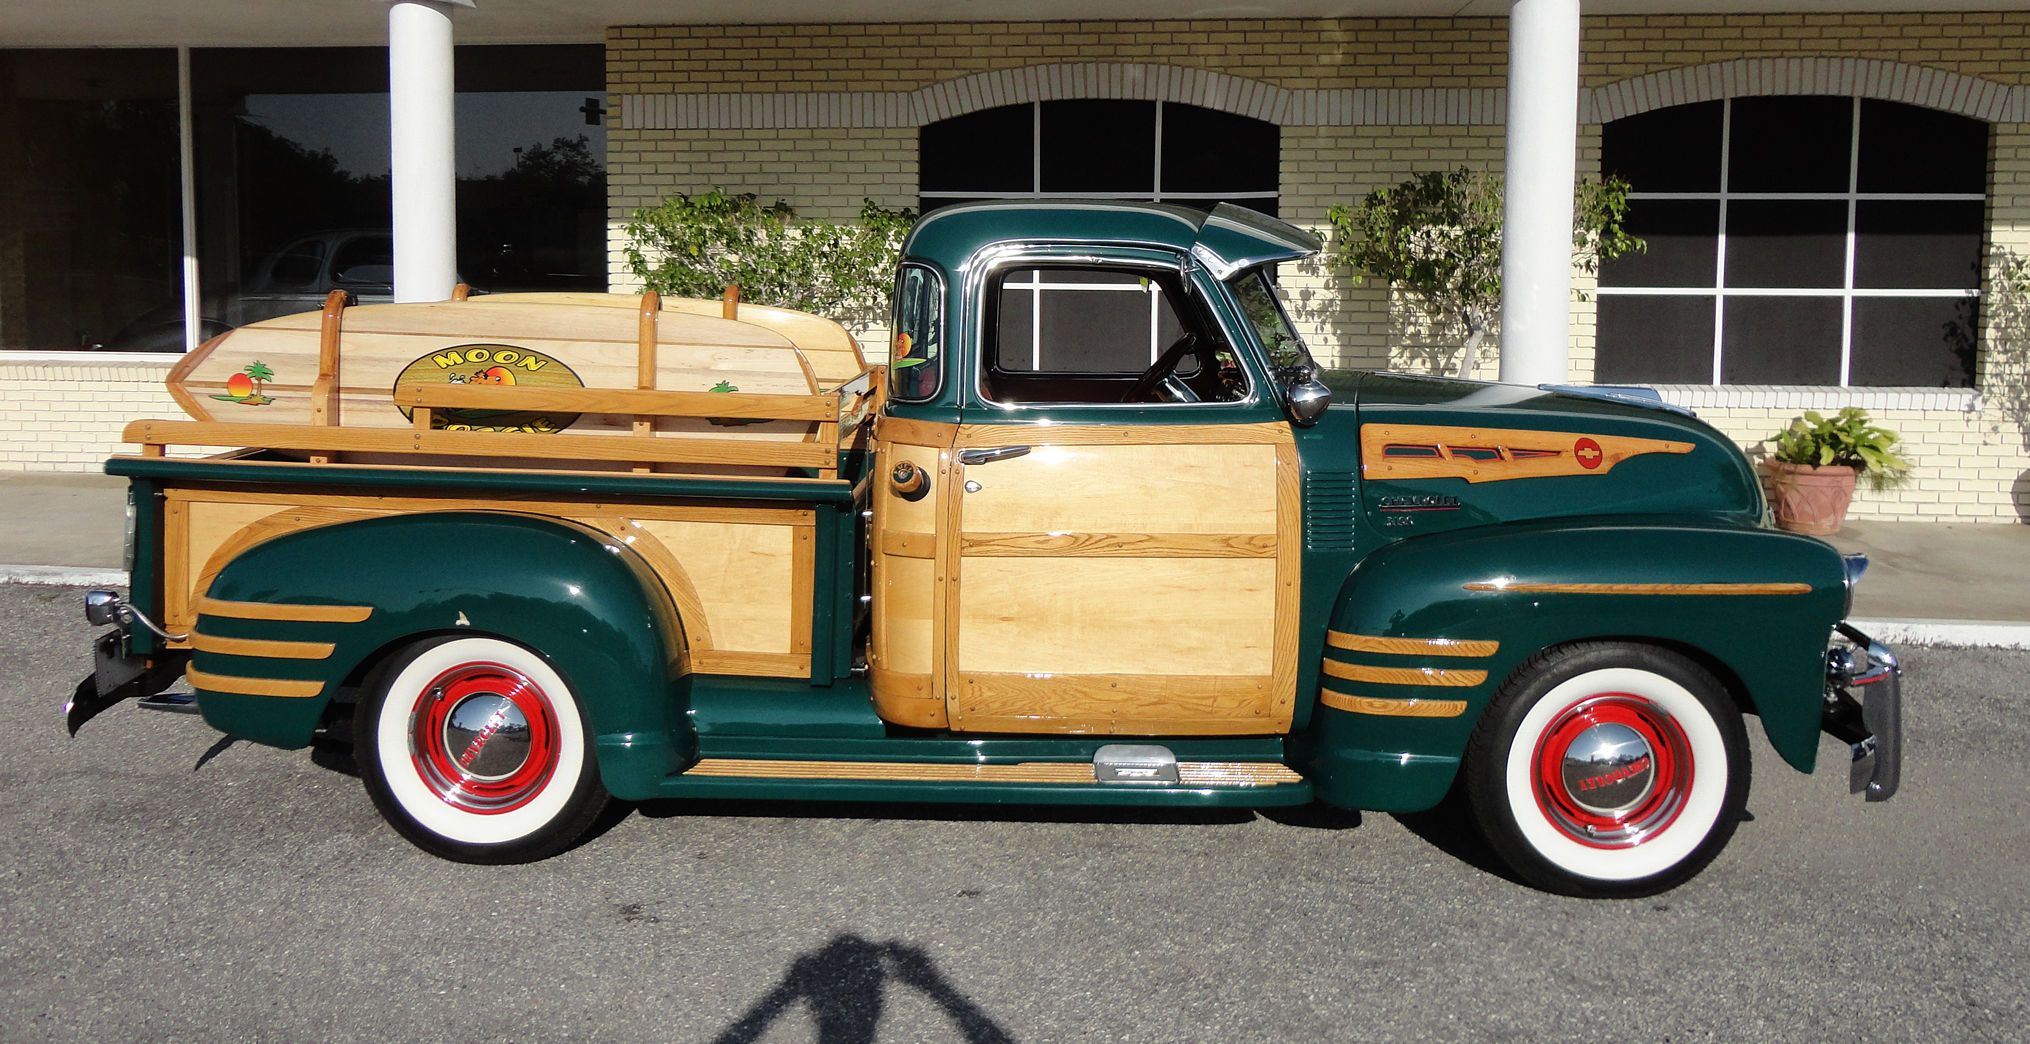 1950 CHEVROLET 3100 CUSTOM WOODY PICKUPRePin Brought to you by